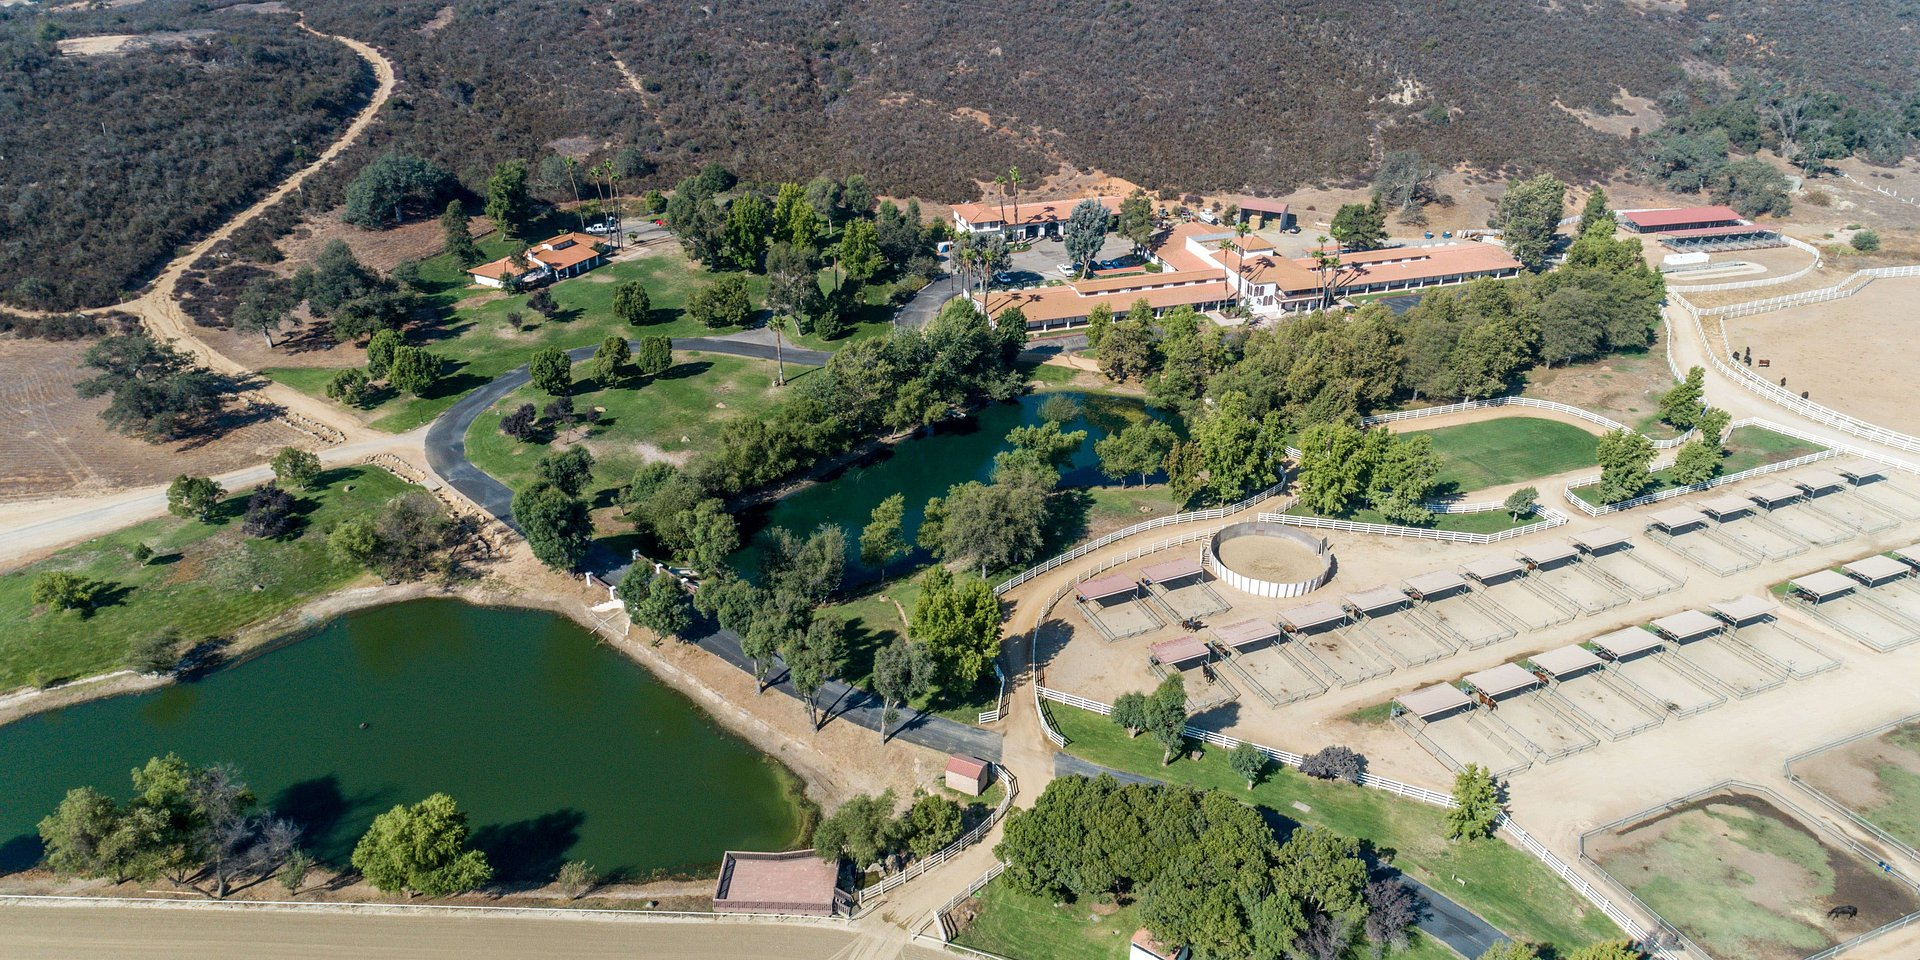 Coldwell Banker Residential Brokerage Lists Equestrian Murrieta Property for $9.5 Million